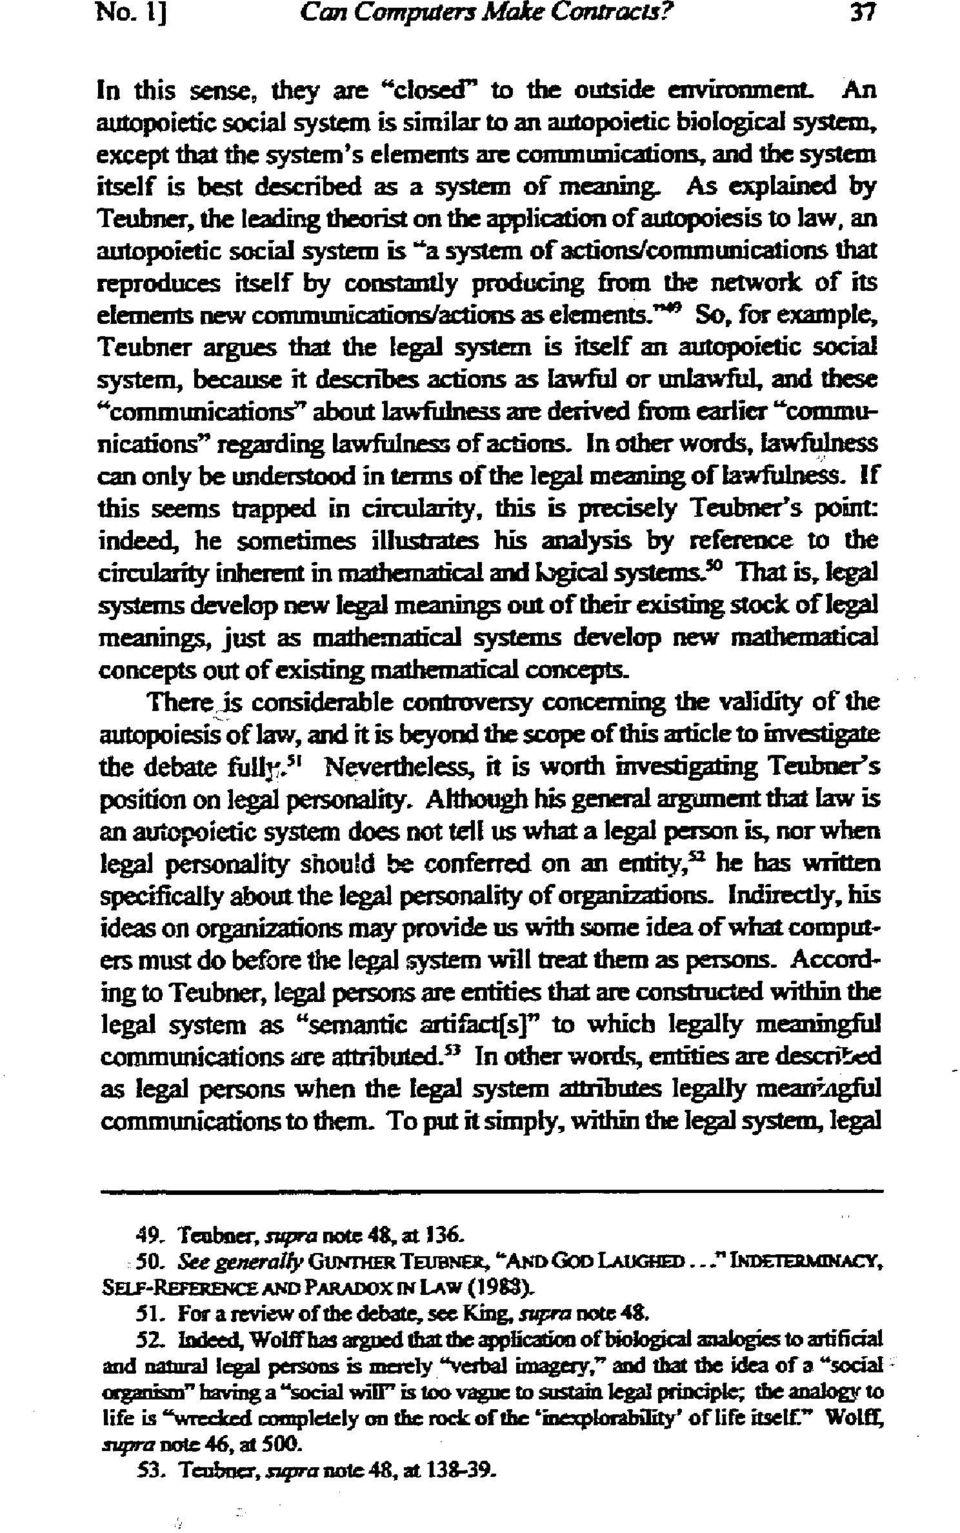 "As explained by Teubner, the leading theorist on the application of autopoiesis to law, an autopoietic social system is ""a system of actions/communications that reproduces itself by constantly ~ from"